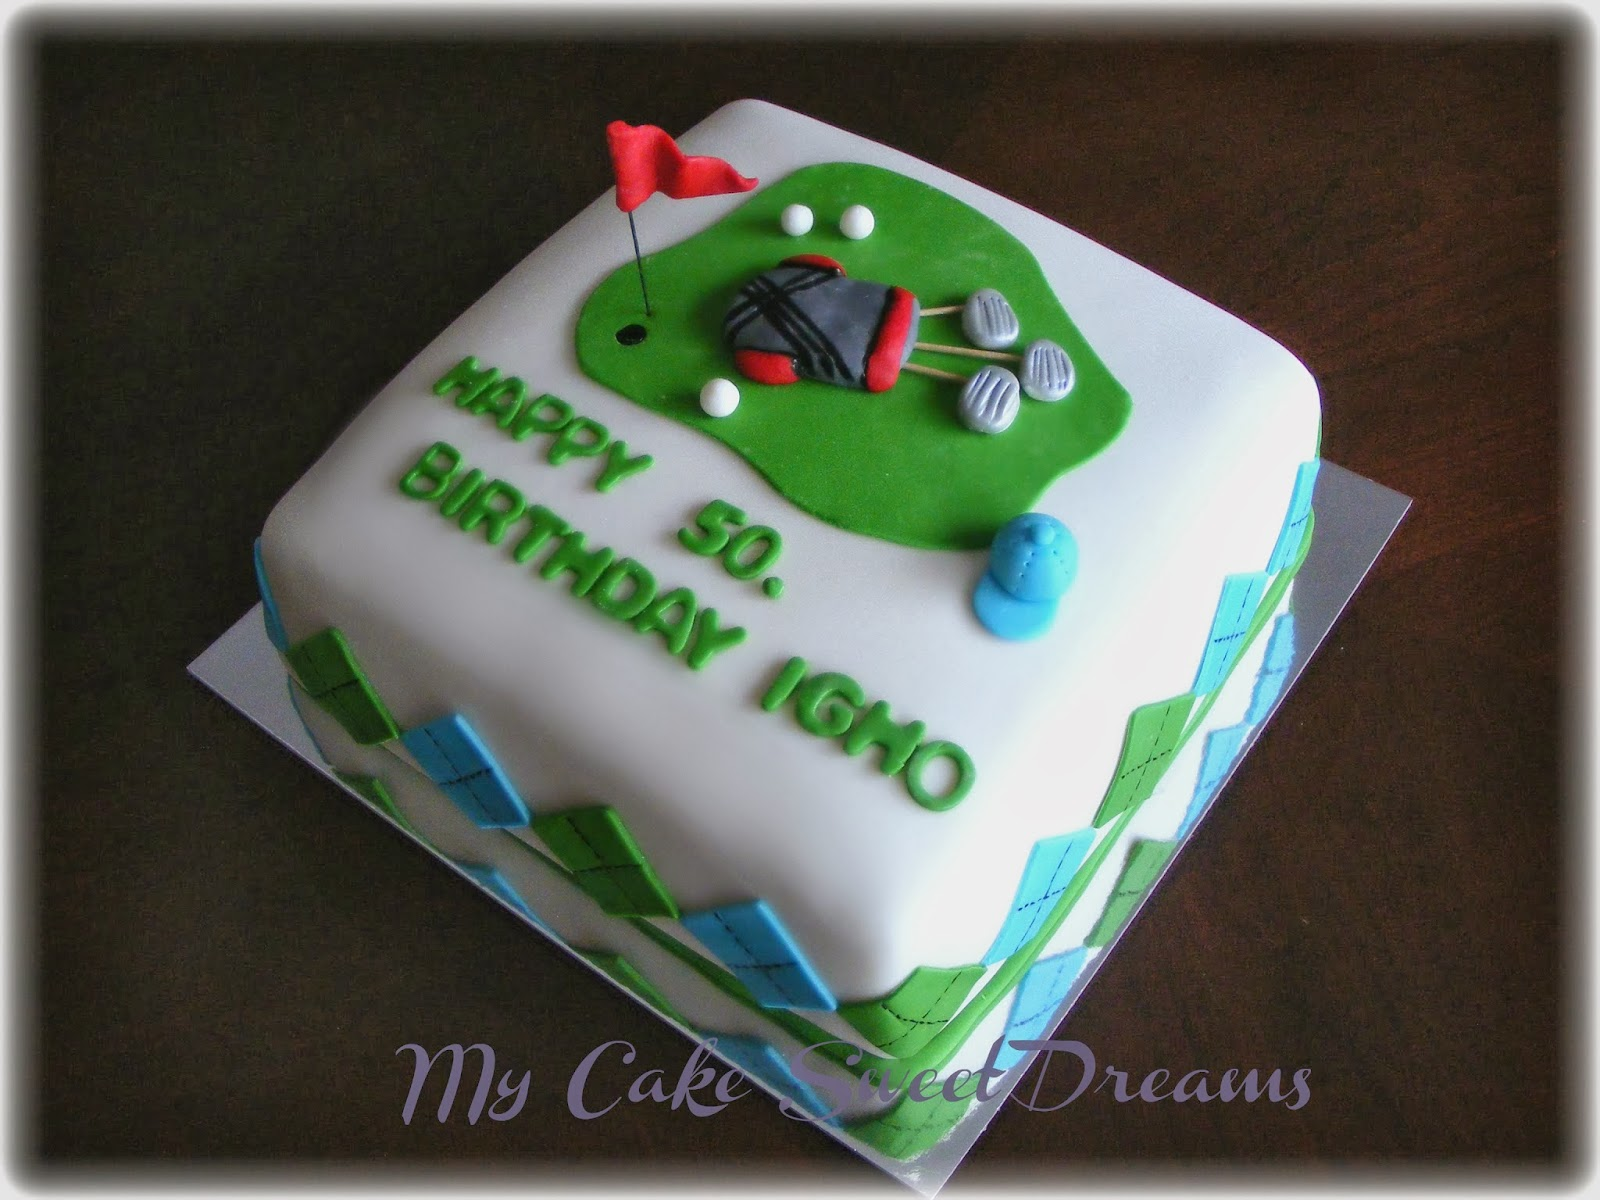 My Cake Sweet Dreams Golf Themed Cake